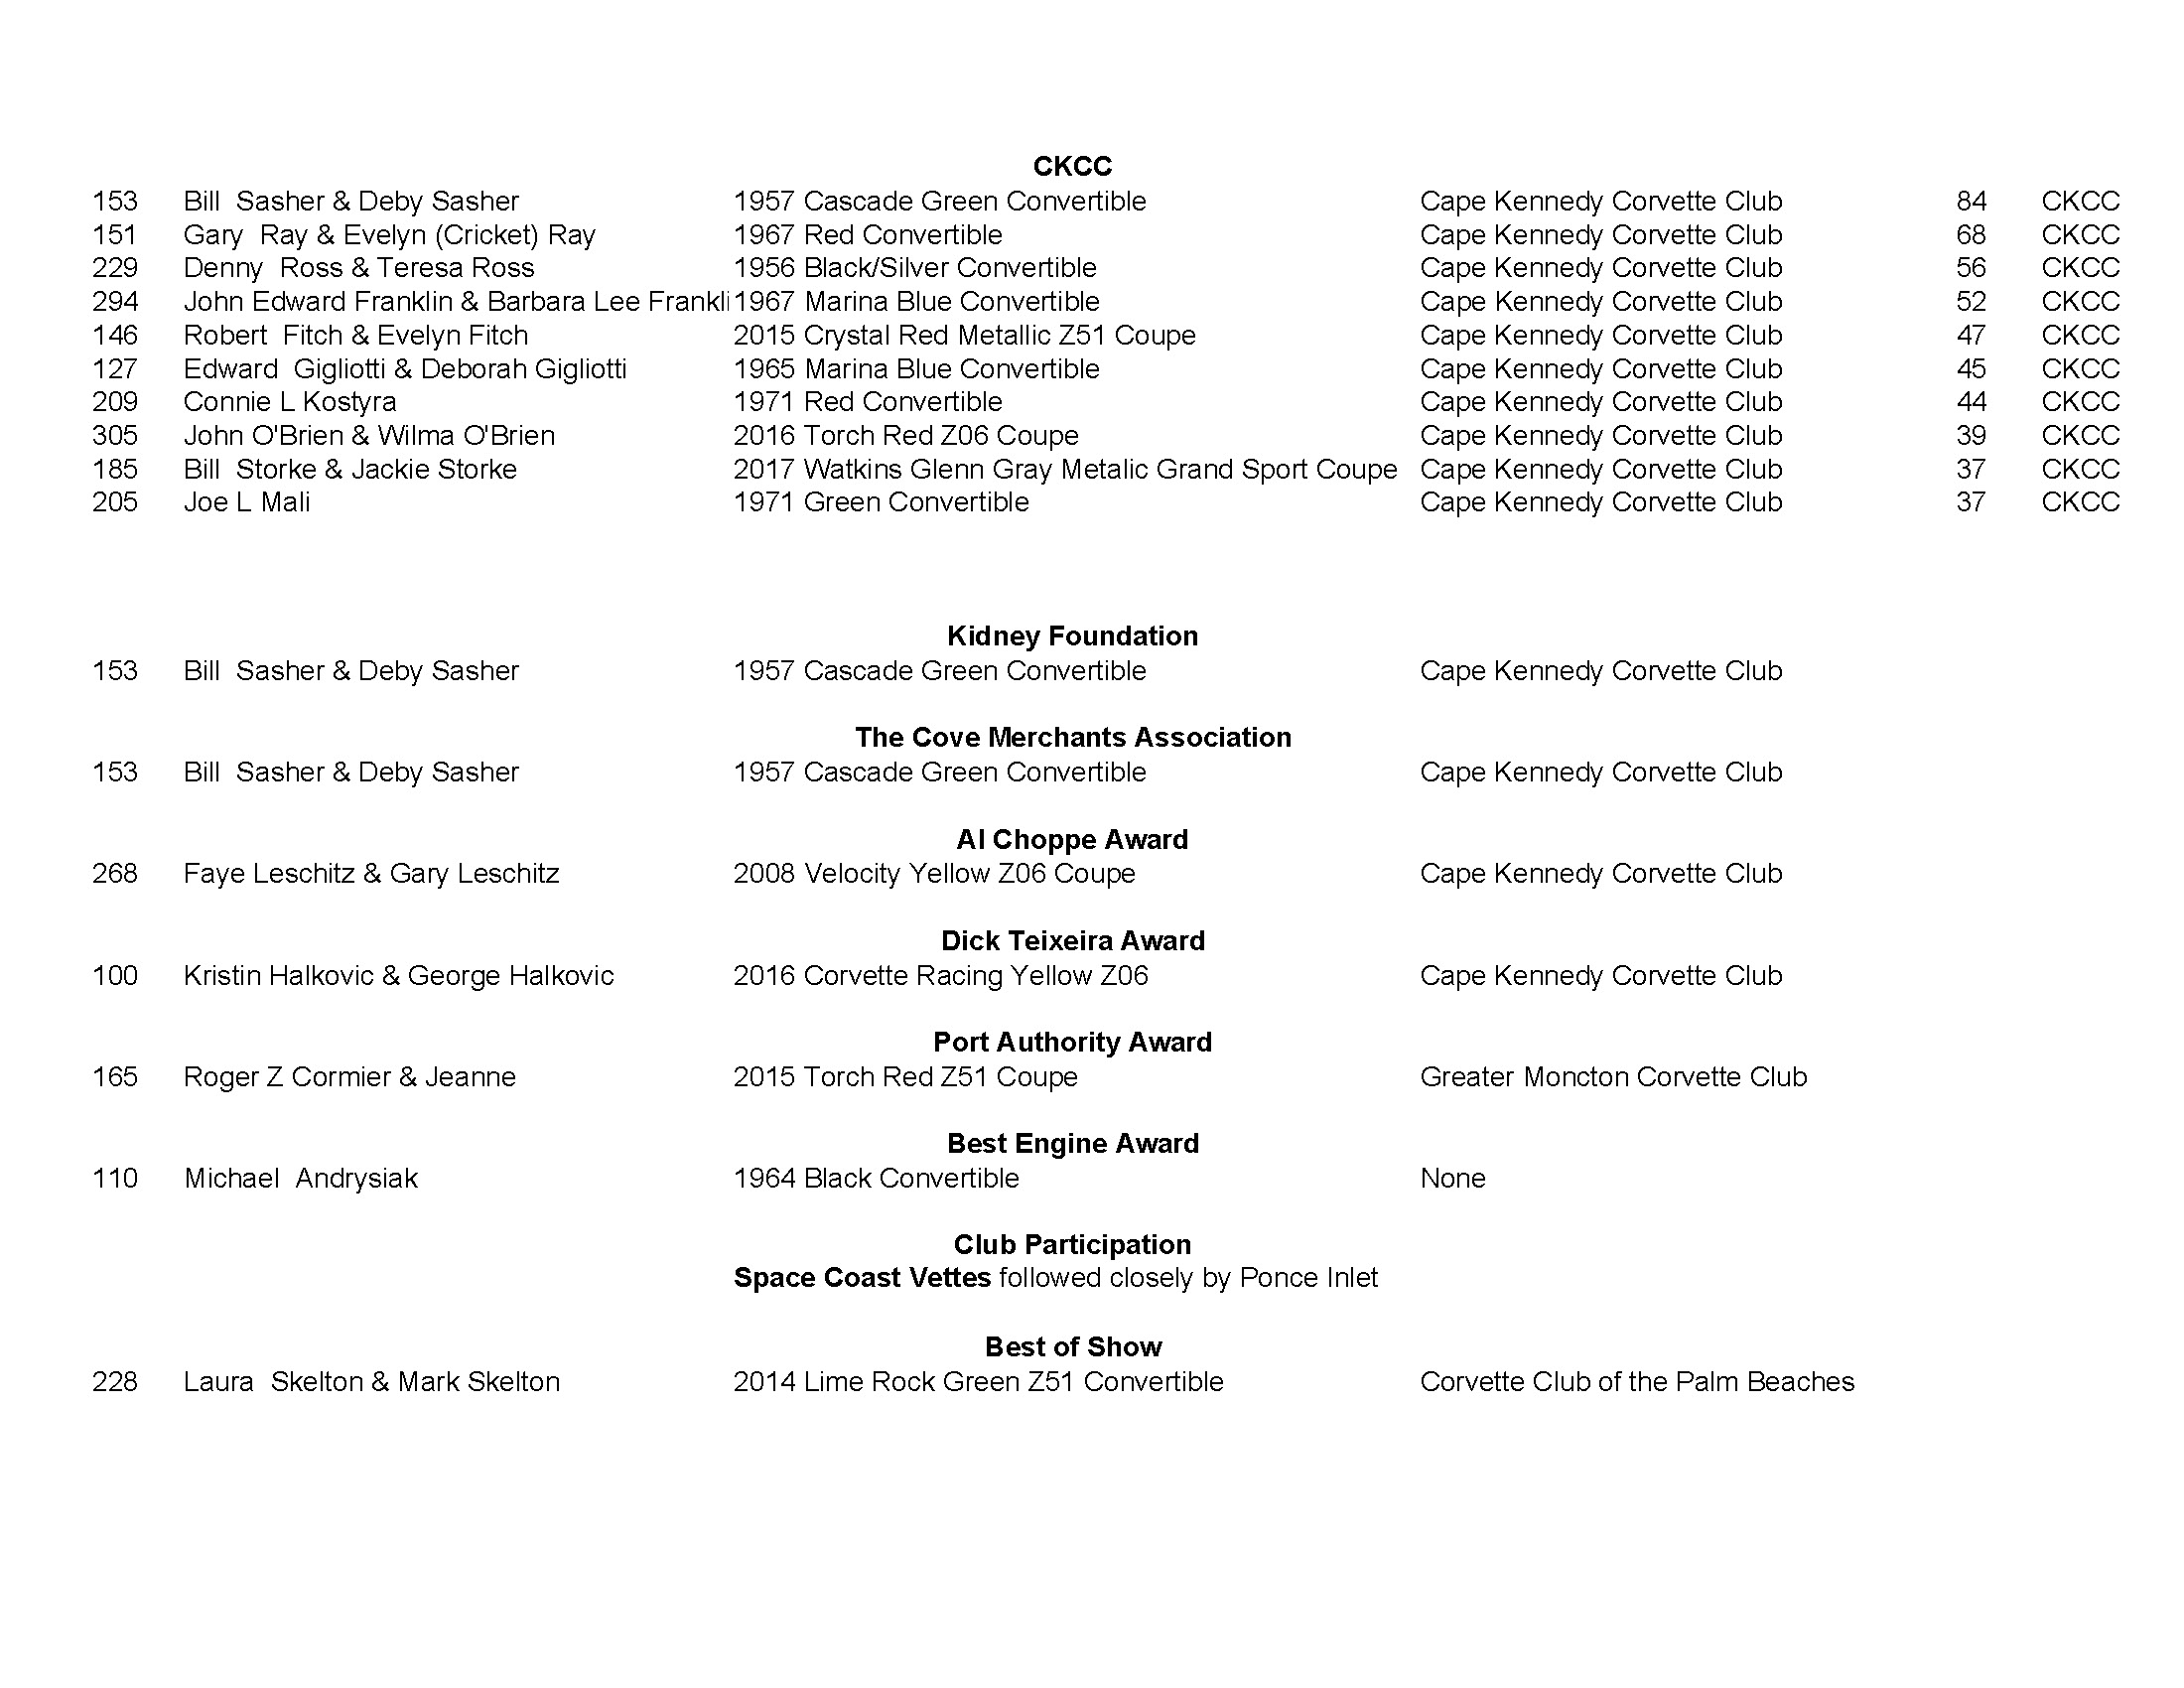 CKCC Car Show Winners Page 3 Click to Enlarge